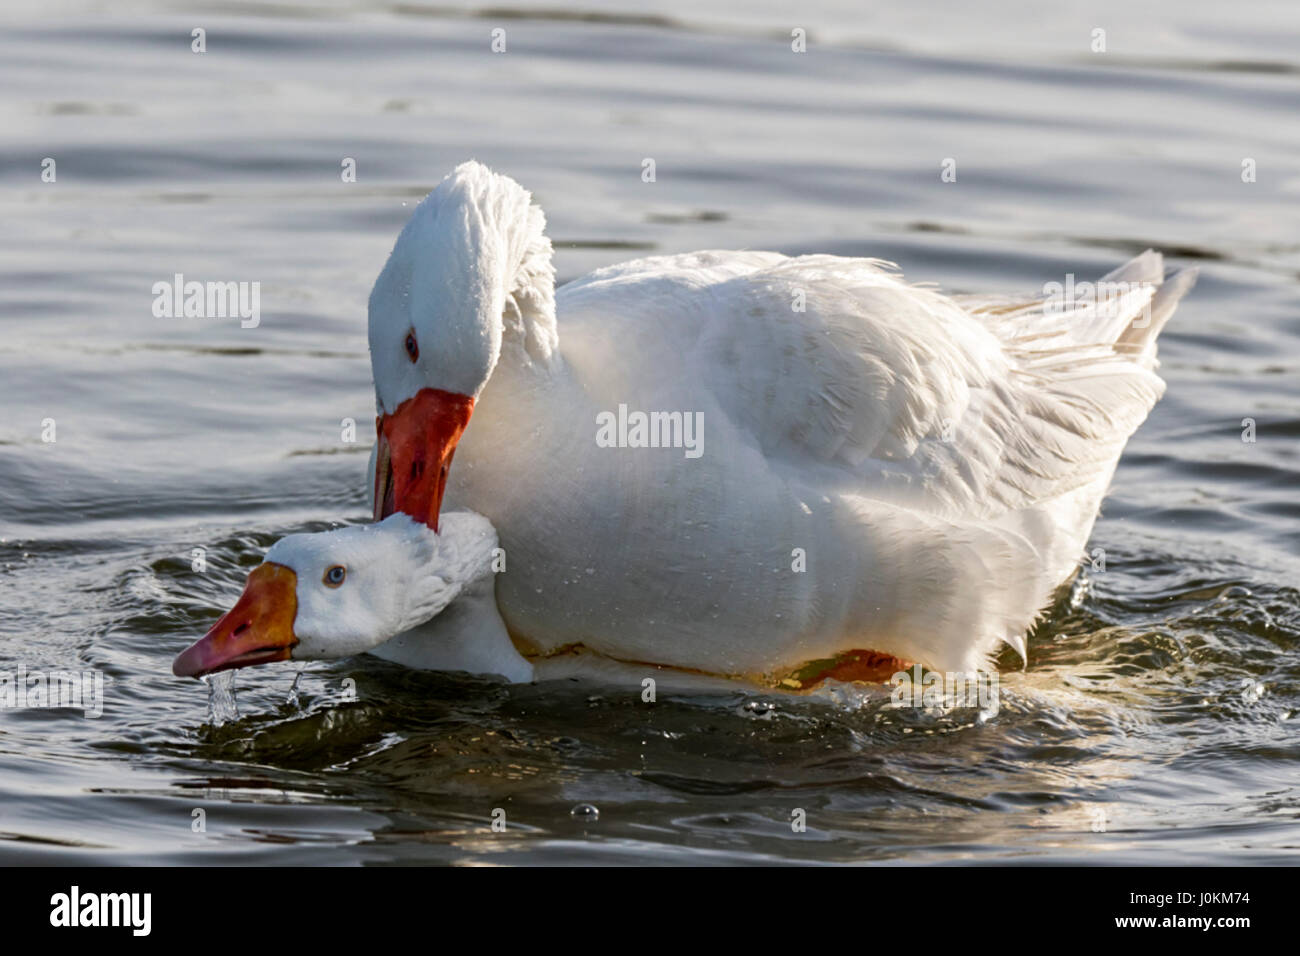 PEKIN DUCK IS A DOMESTICATED DUCK  WHEN MATING, THE MALE WILL MOUNT THE FEMALE AND PUSH HER HEAD UNDER WATER.  THEY - Stock Image